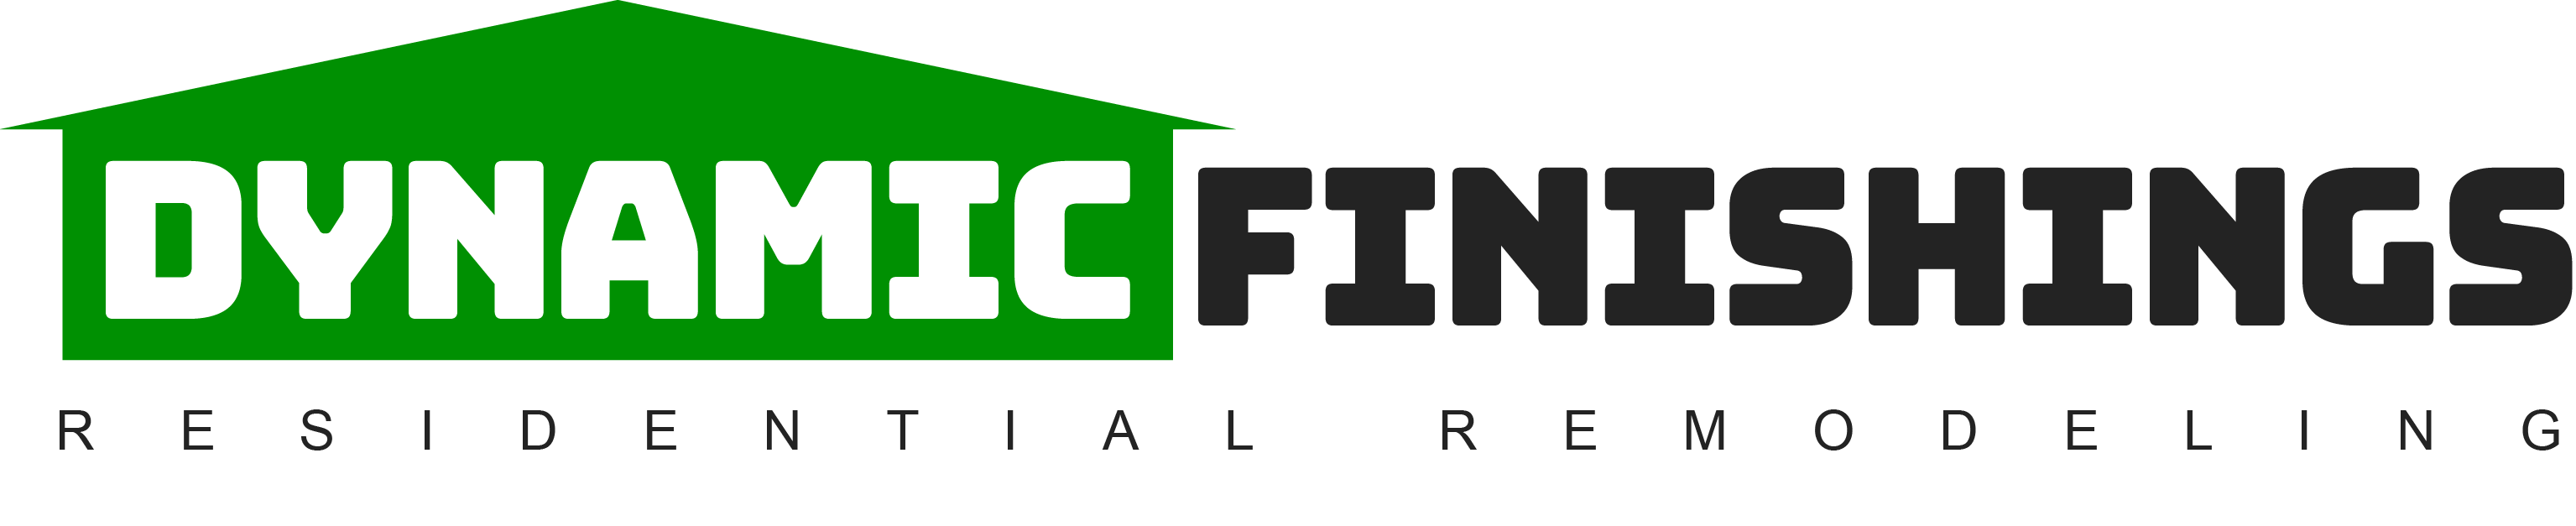 Dynamic Finishings logo